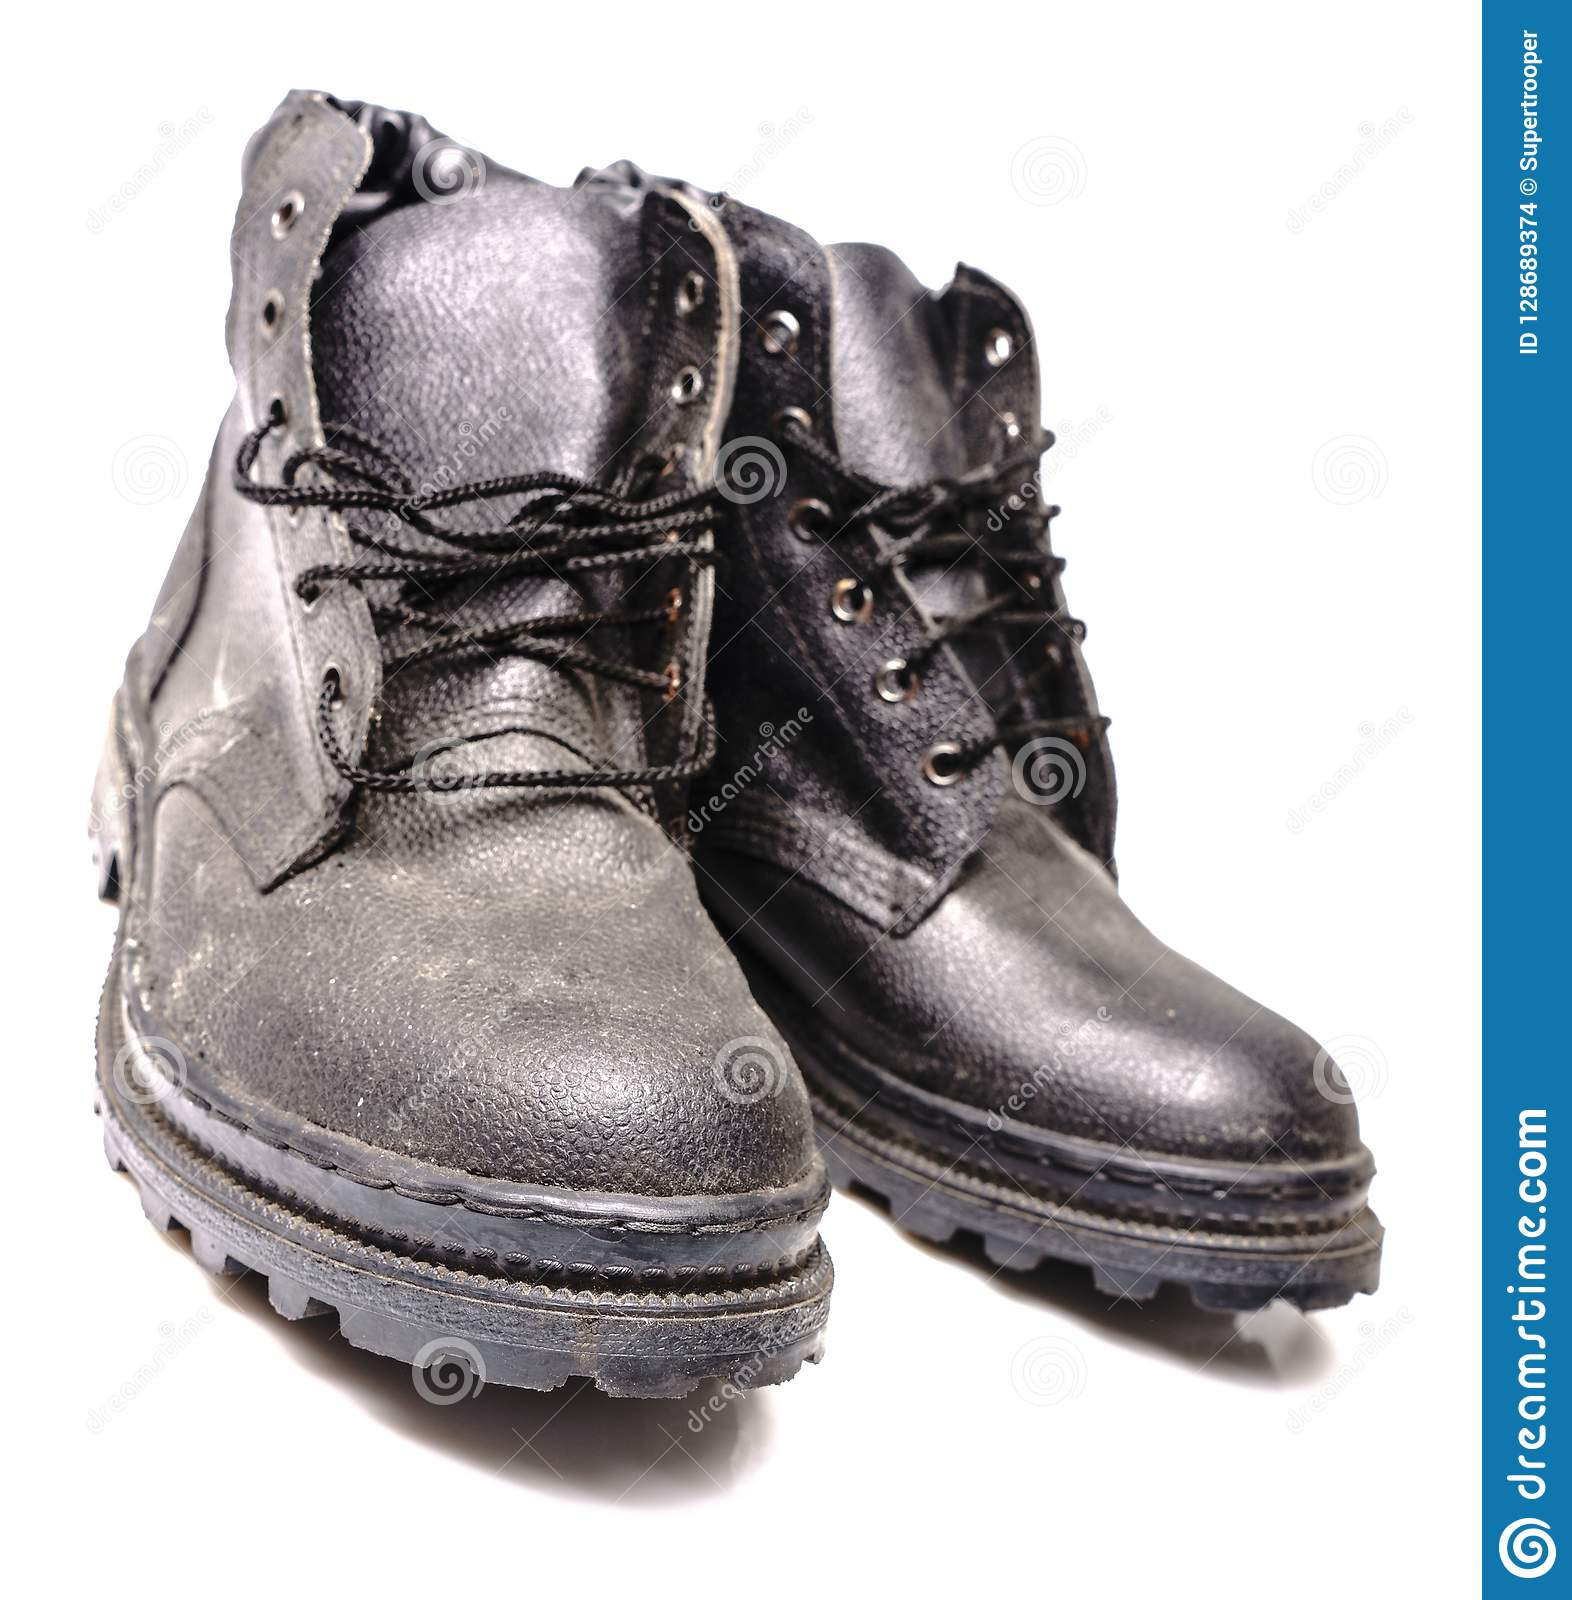 3892dc781db Protection Worker Shoes stock photo. Image of care, hazardous ...